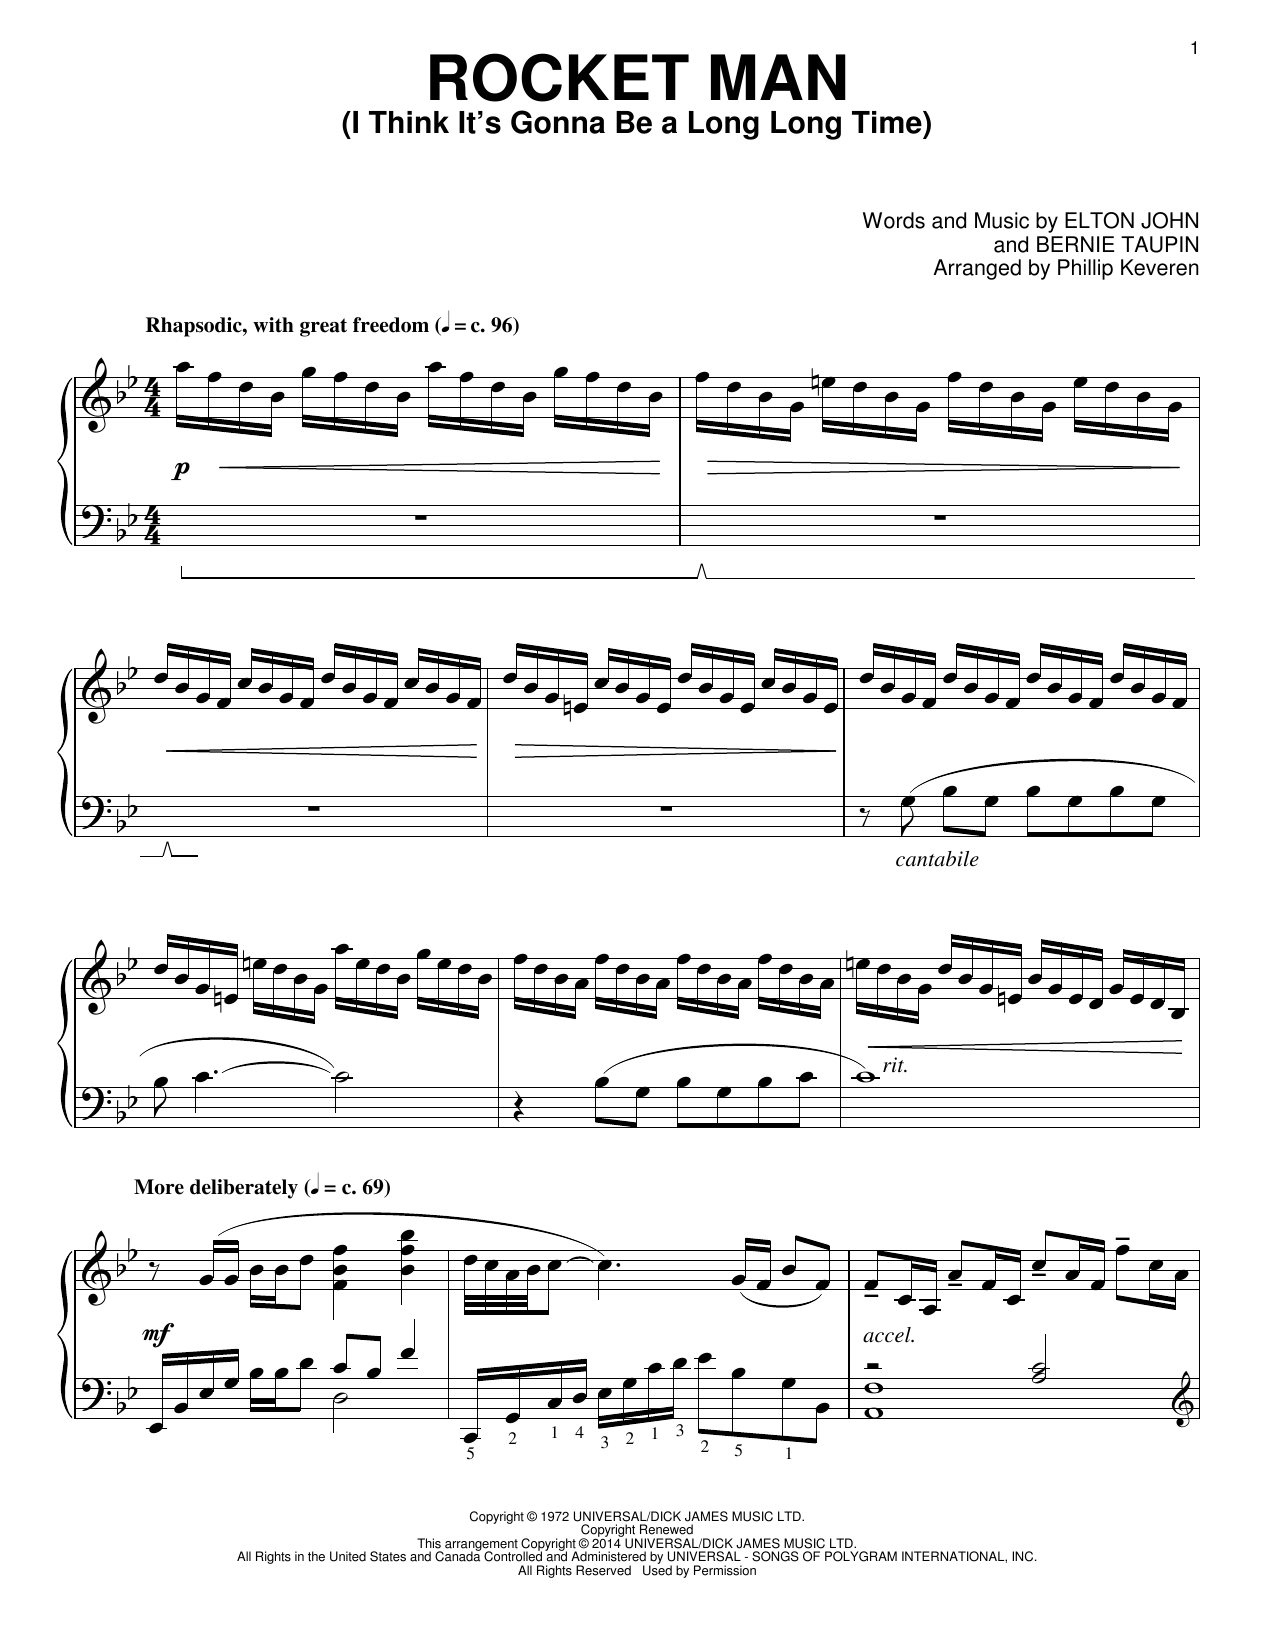 Elton John Rocket Man (I Think It's Gonna Be A Long Long Time) [Classical version] (arr. Phillip Keveren) sheet music notes and chords. Download Printable PDF.